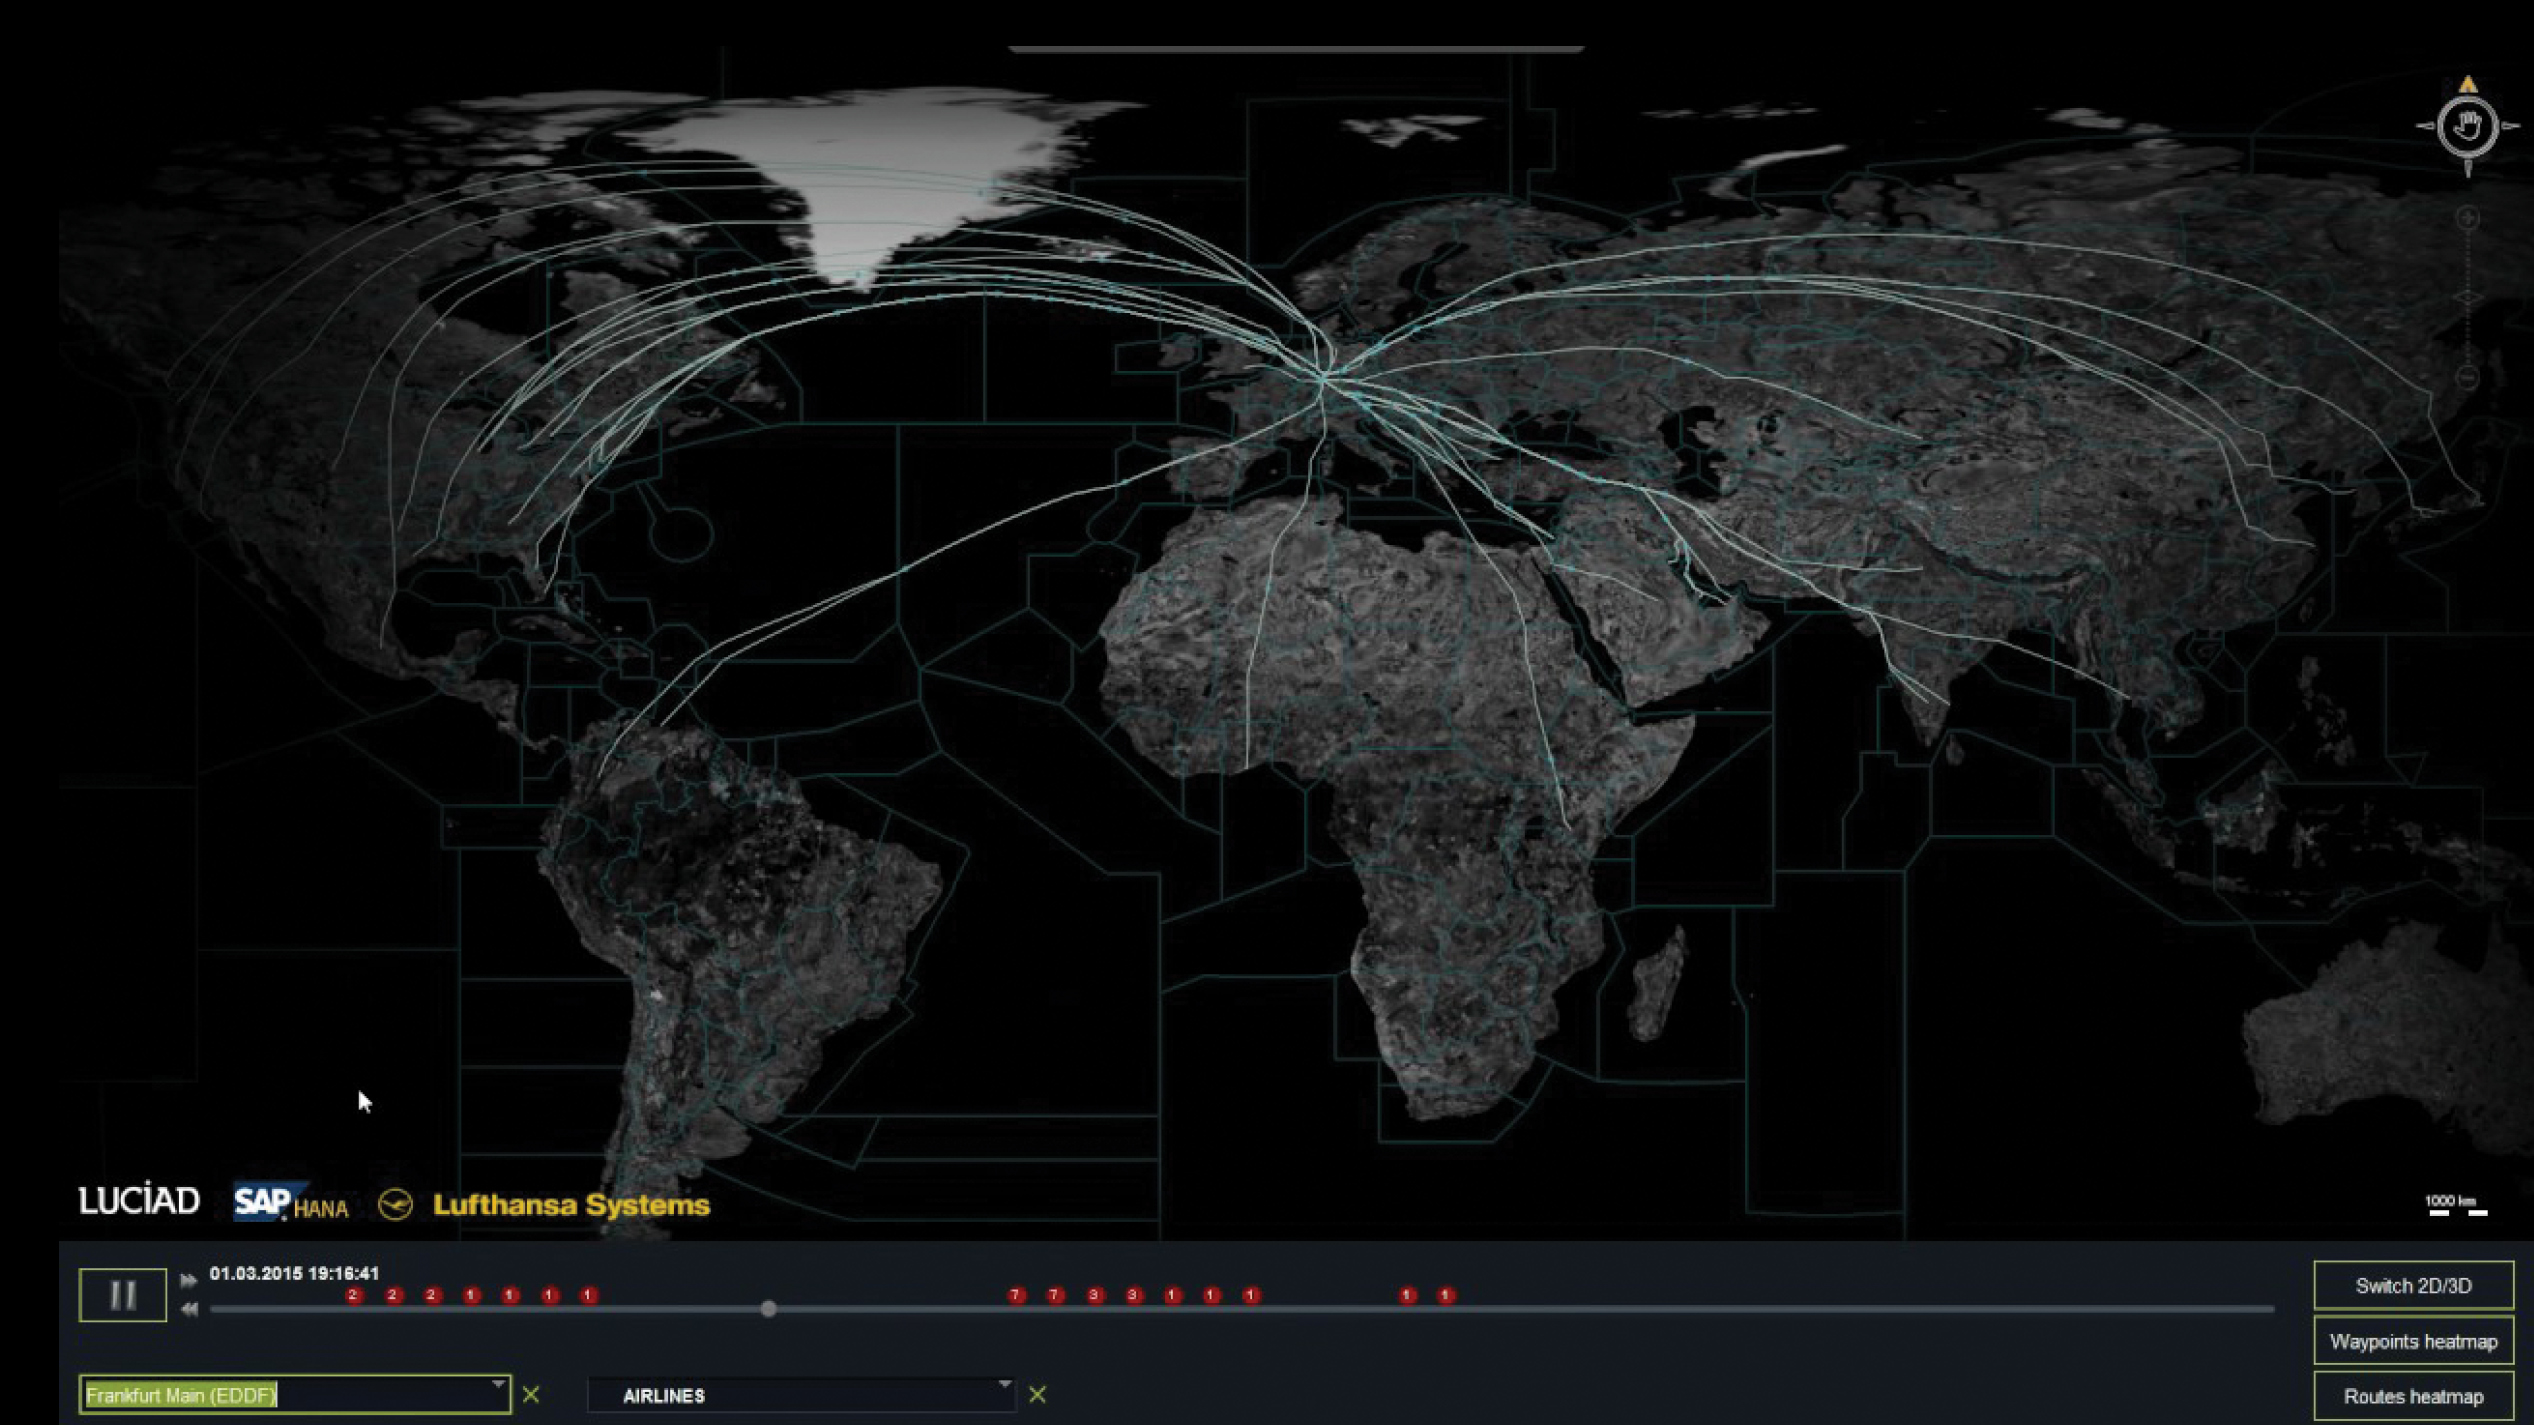 Lufthansa Systems uses a system with spatial capabilities to track global flight operations more closely and accurately